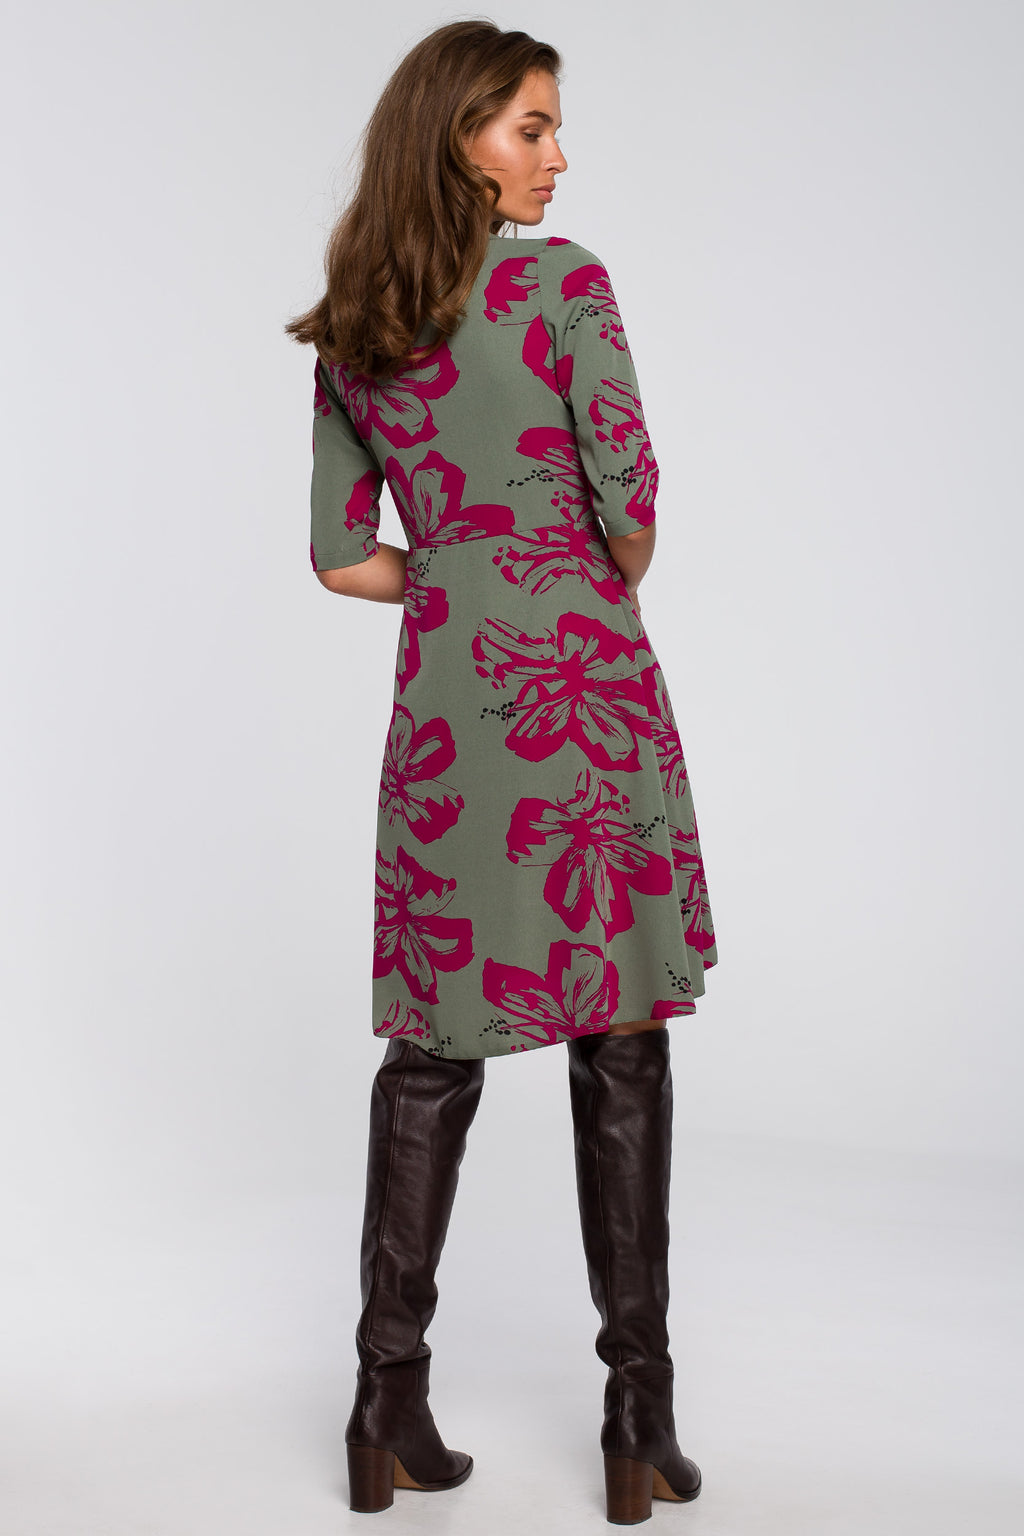 Wrap A Line Almond Green Dress With Fuchsia Floral Print - So Chic Boutique